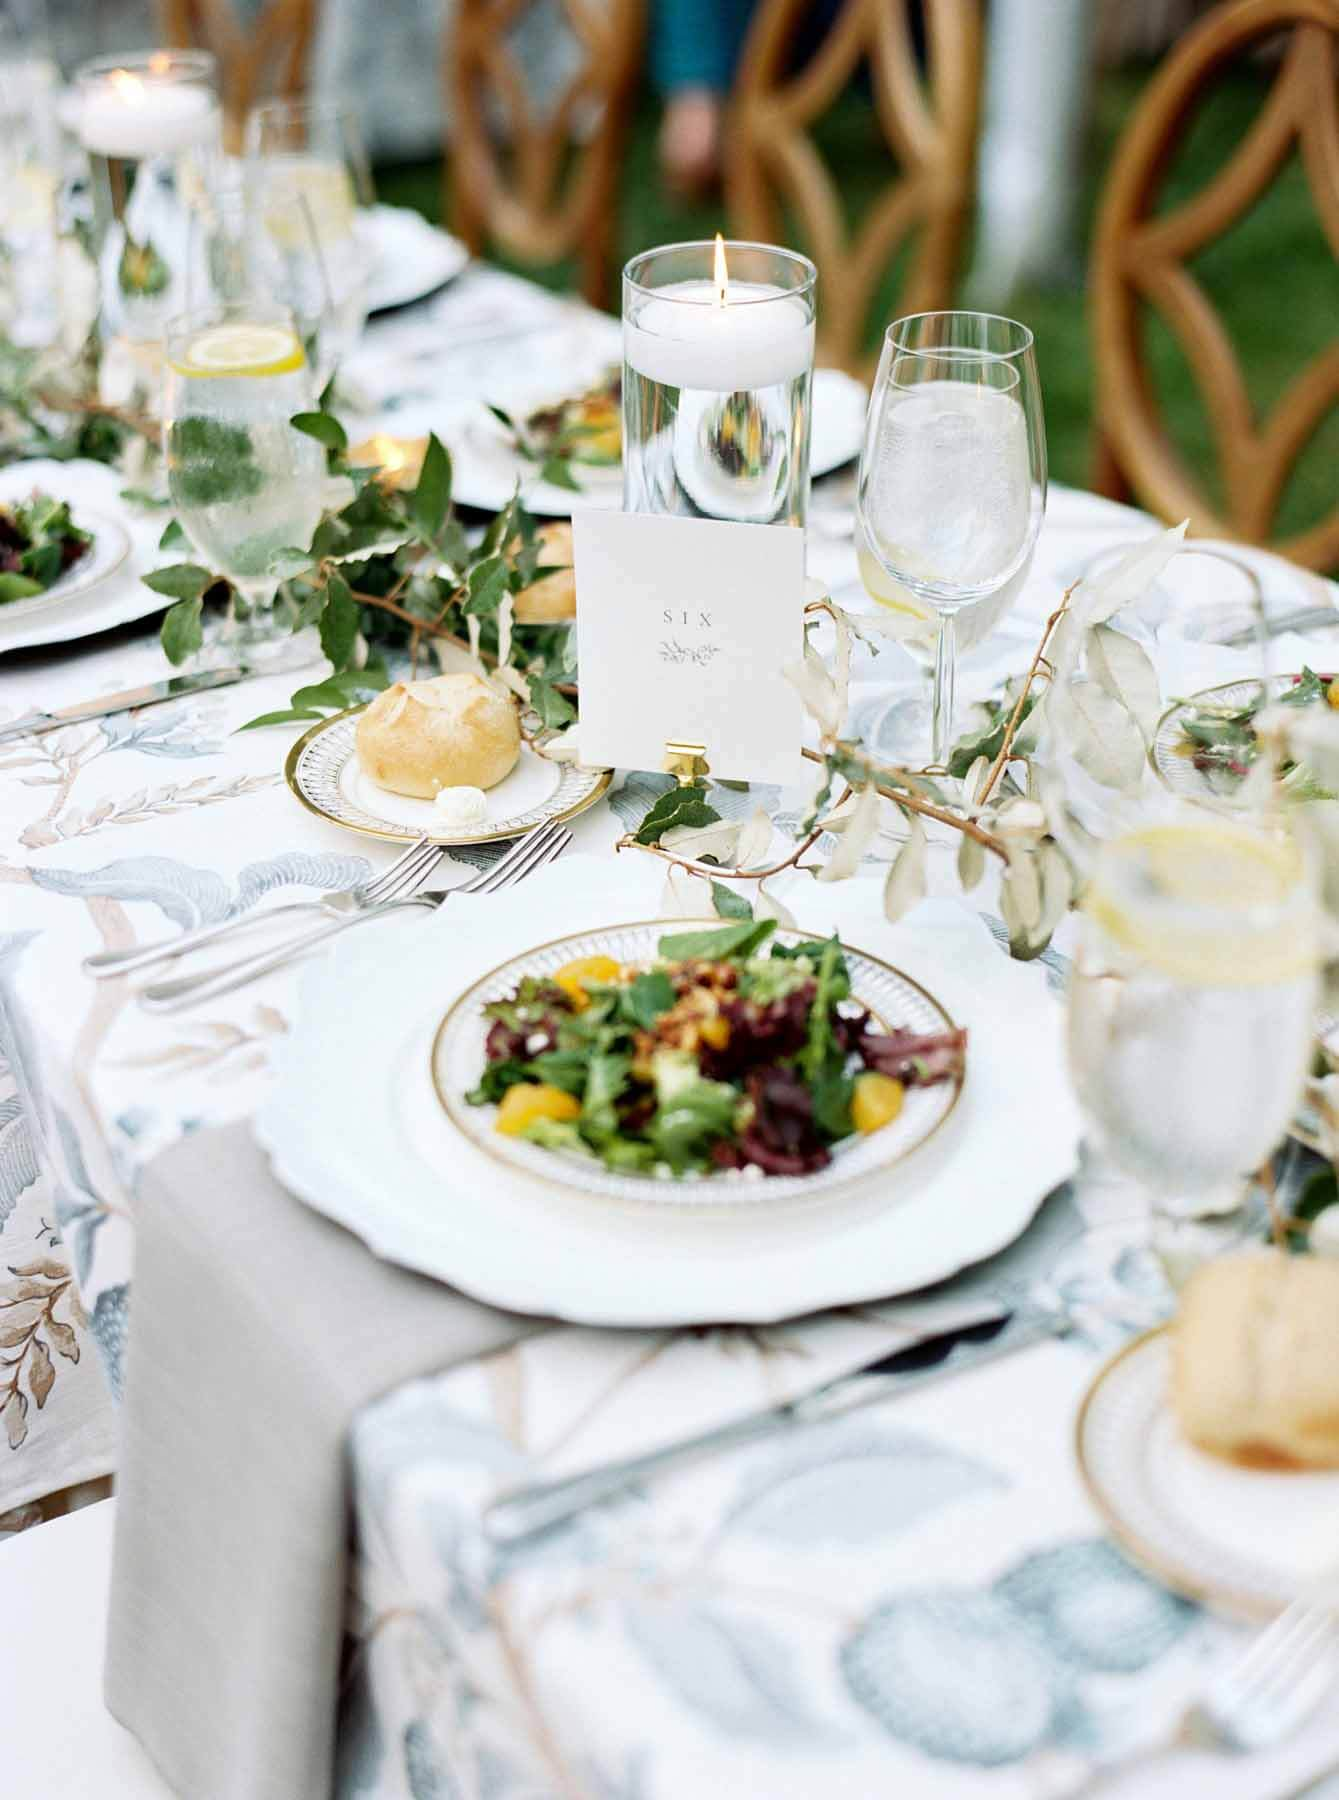 Tablescape at an interior designer's wedding, with a plate of salad